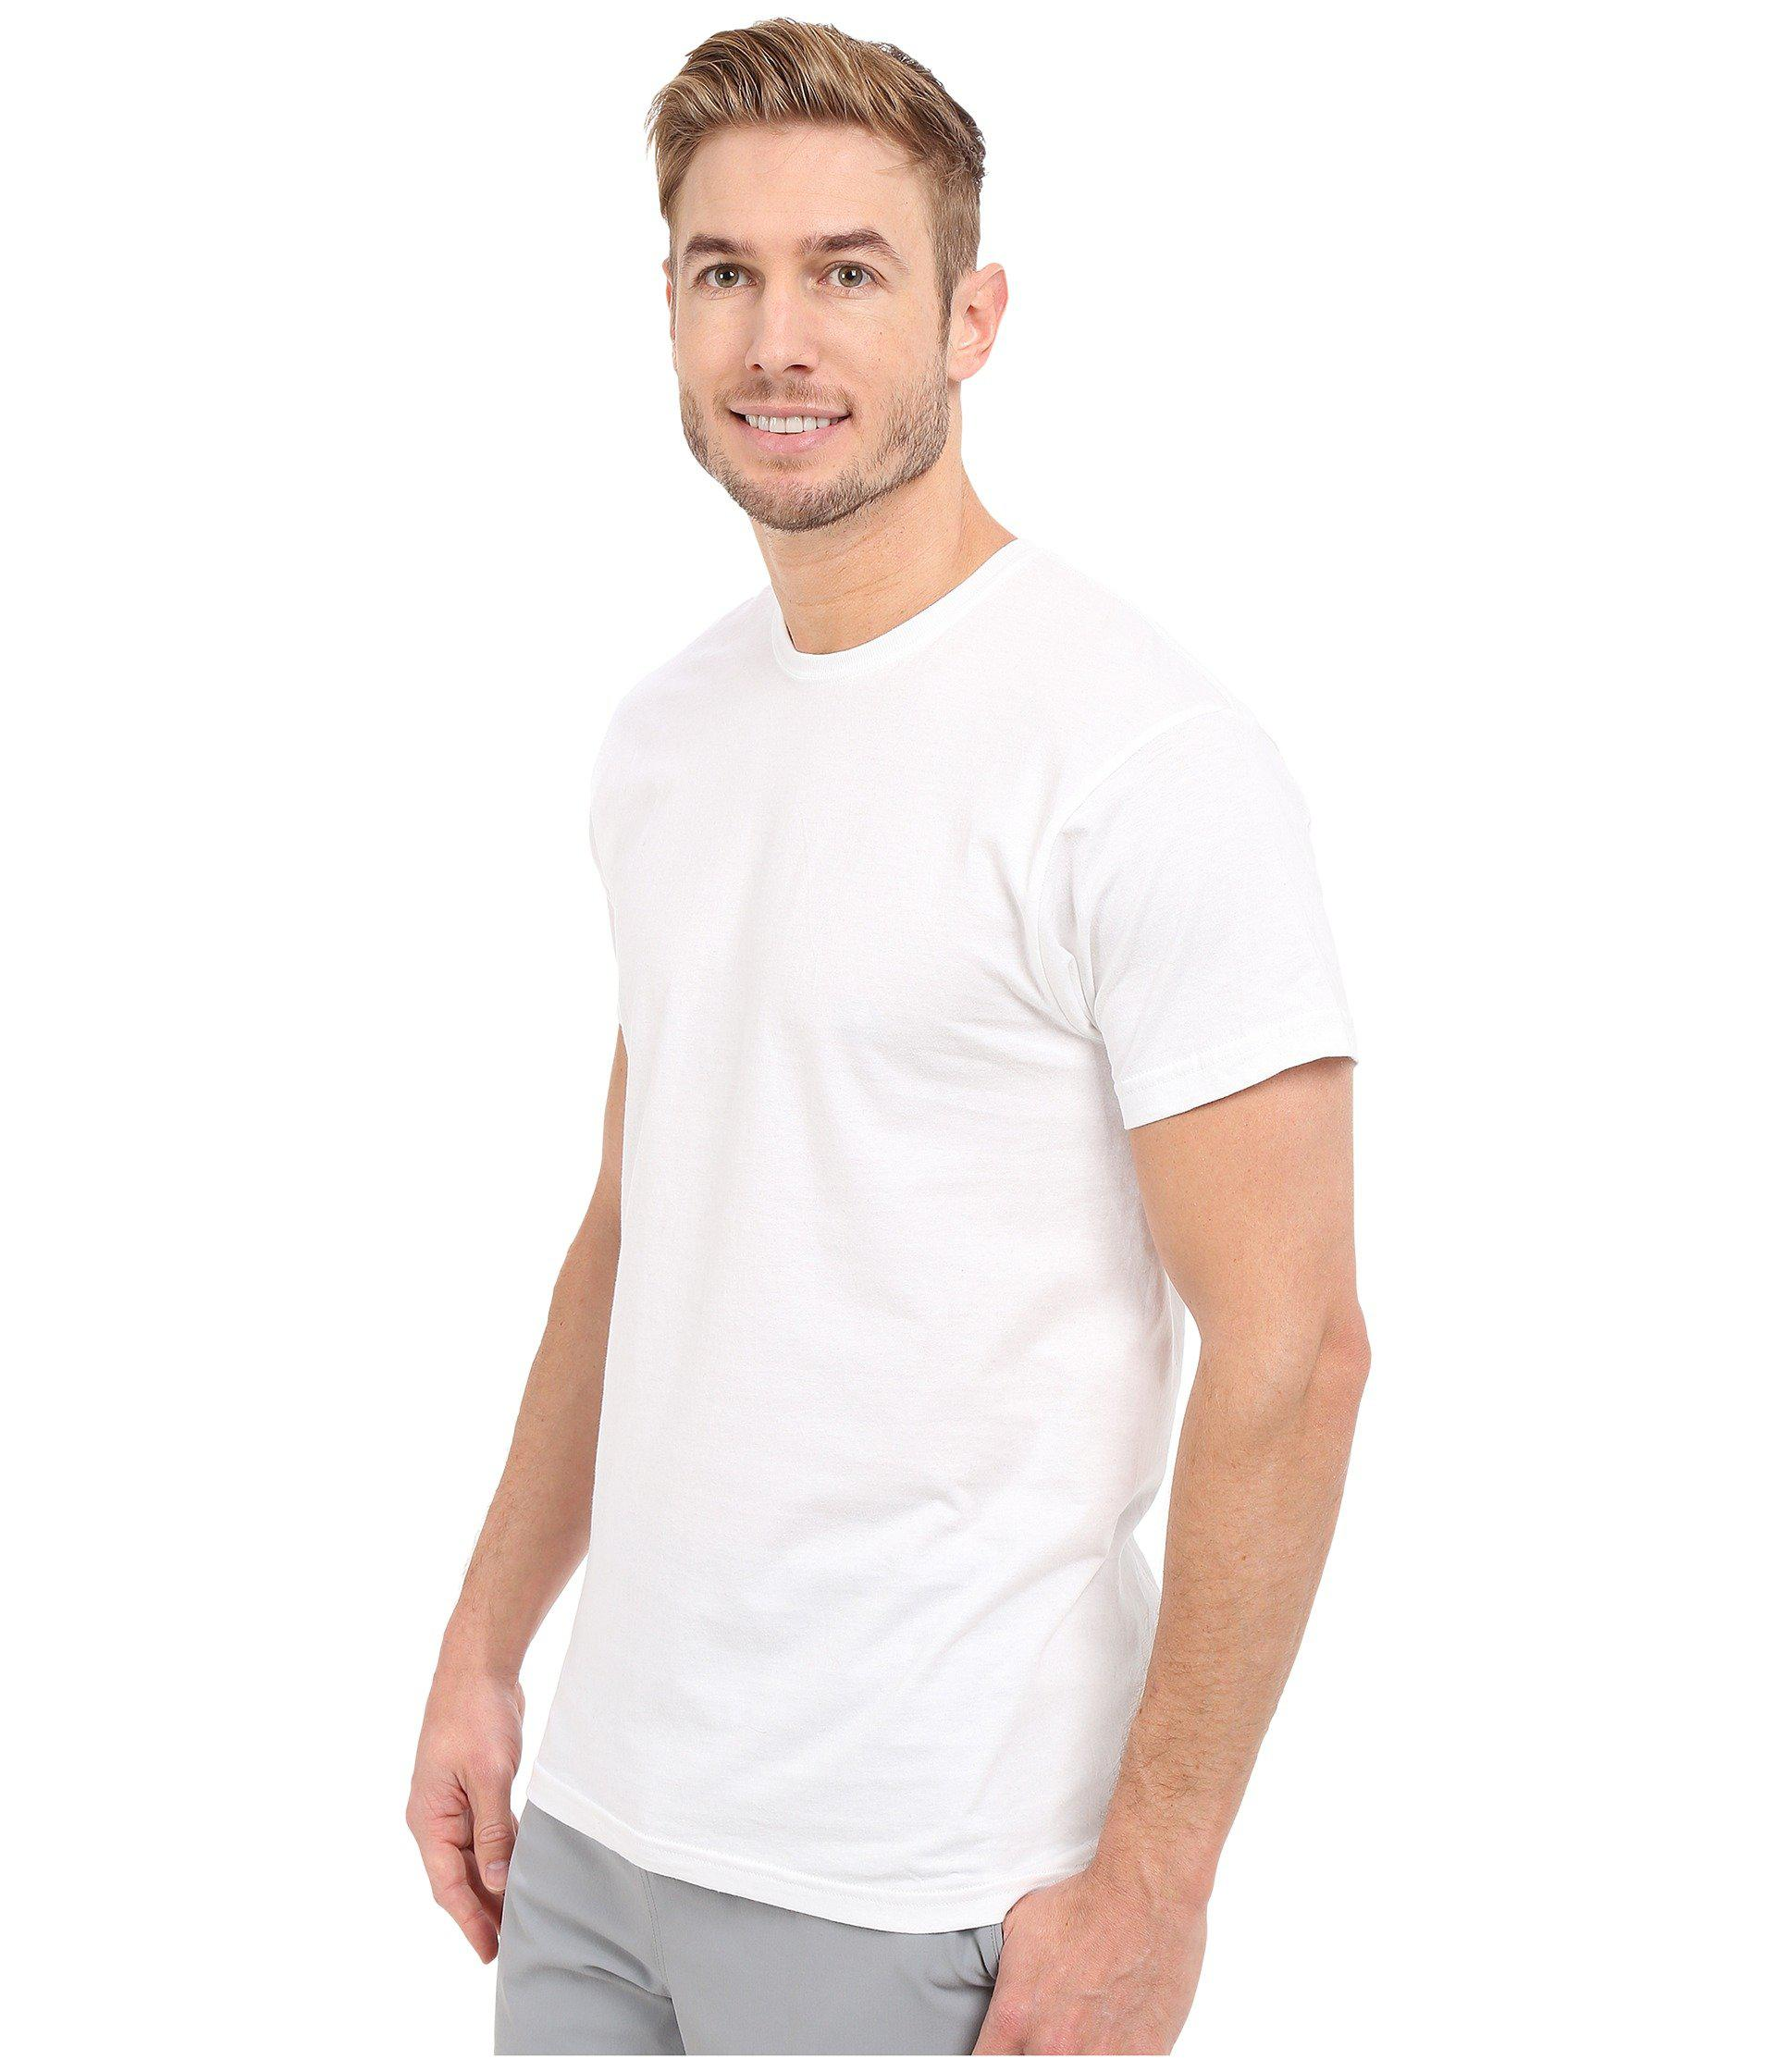 Hanes 2135 FreshIQ Soft White Cotton Crew Neck Undershirt T-Shirt Large 3pk